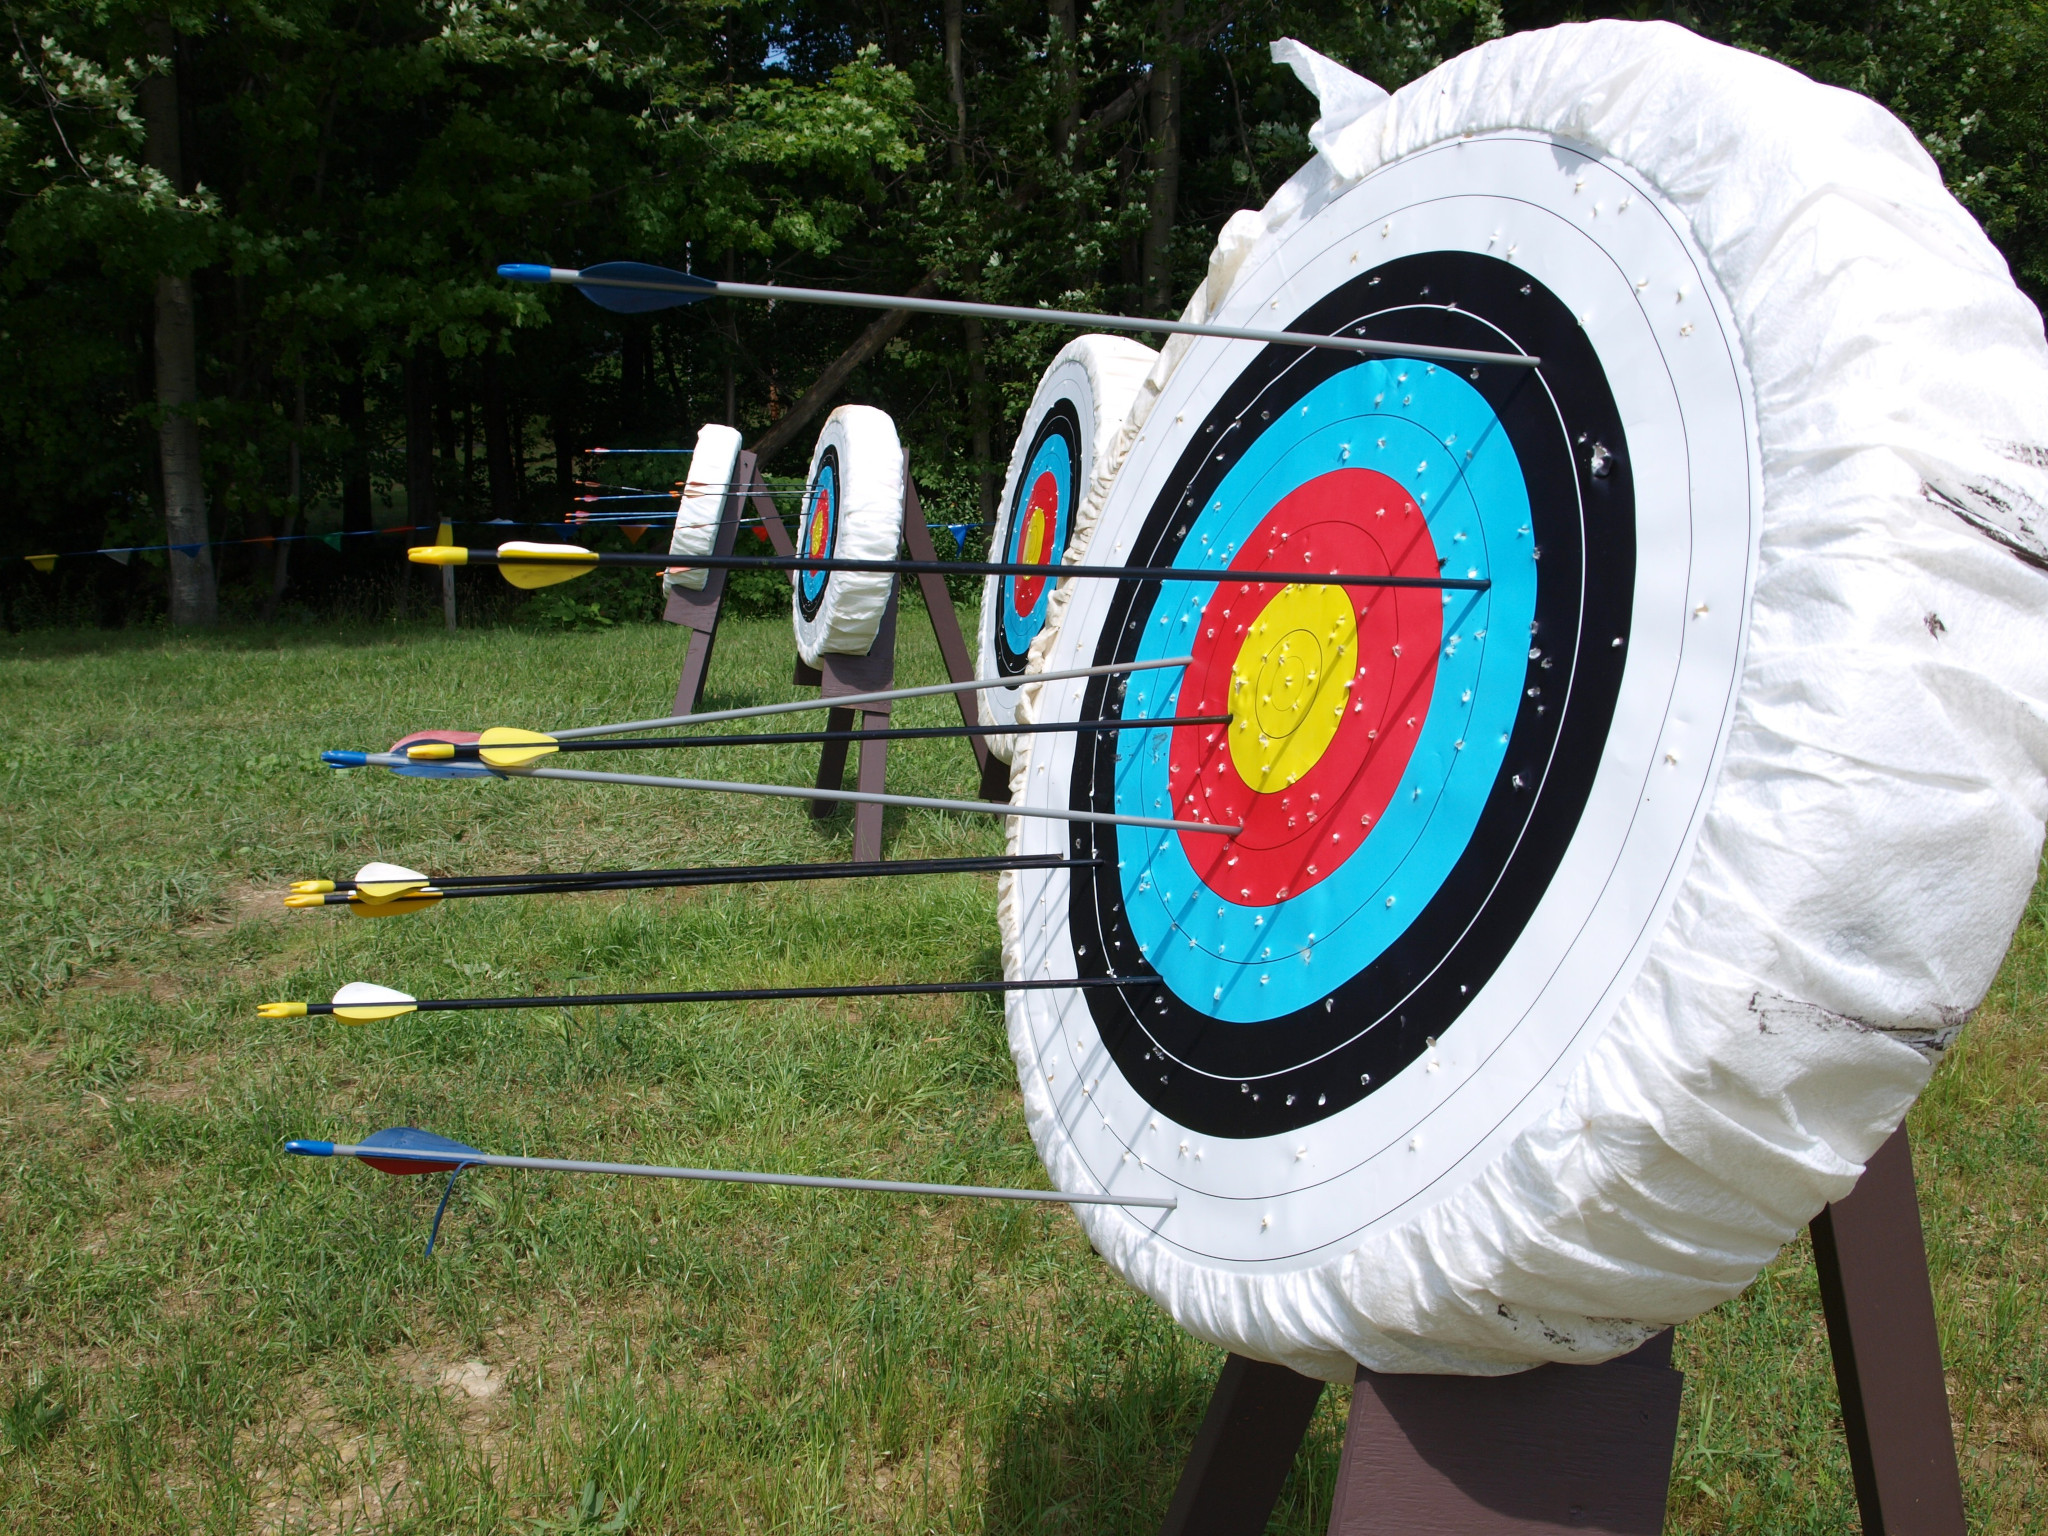 A row of 4 outdoor target butts filled with arrows, viewed from the side.